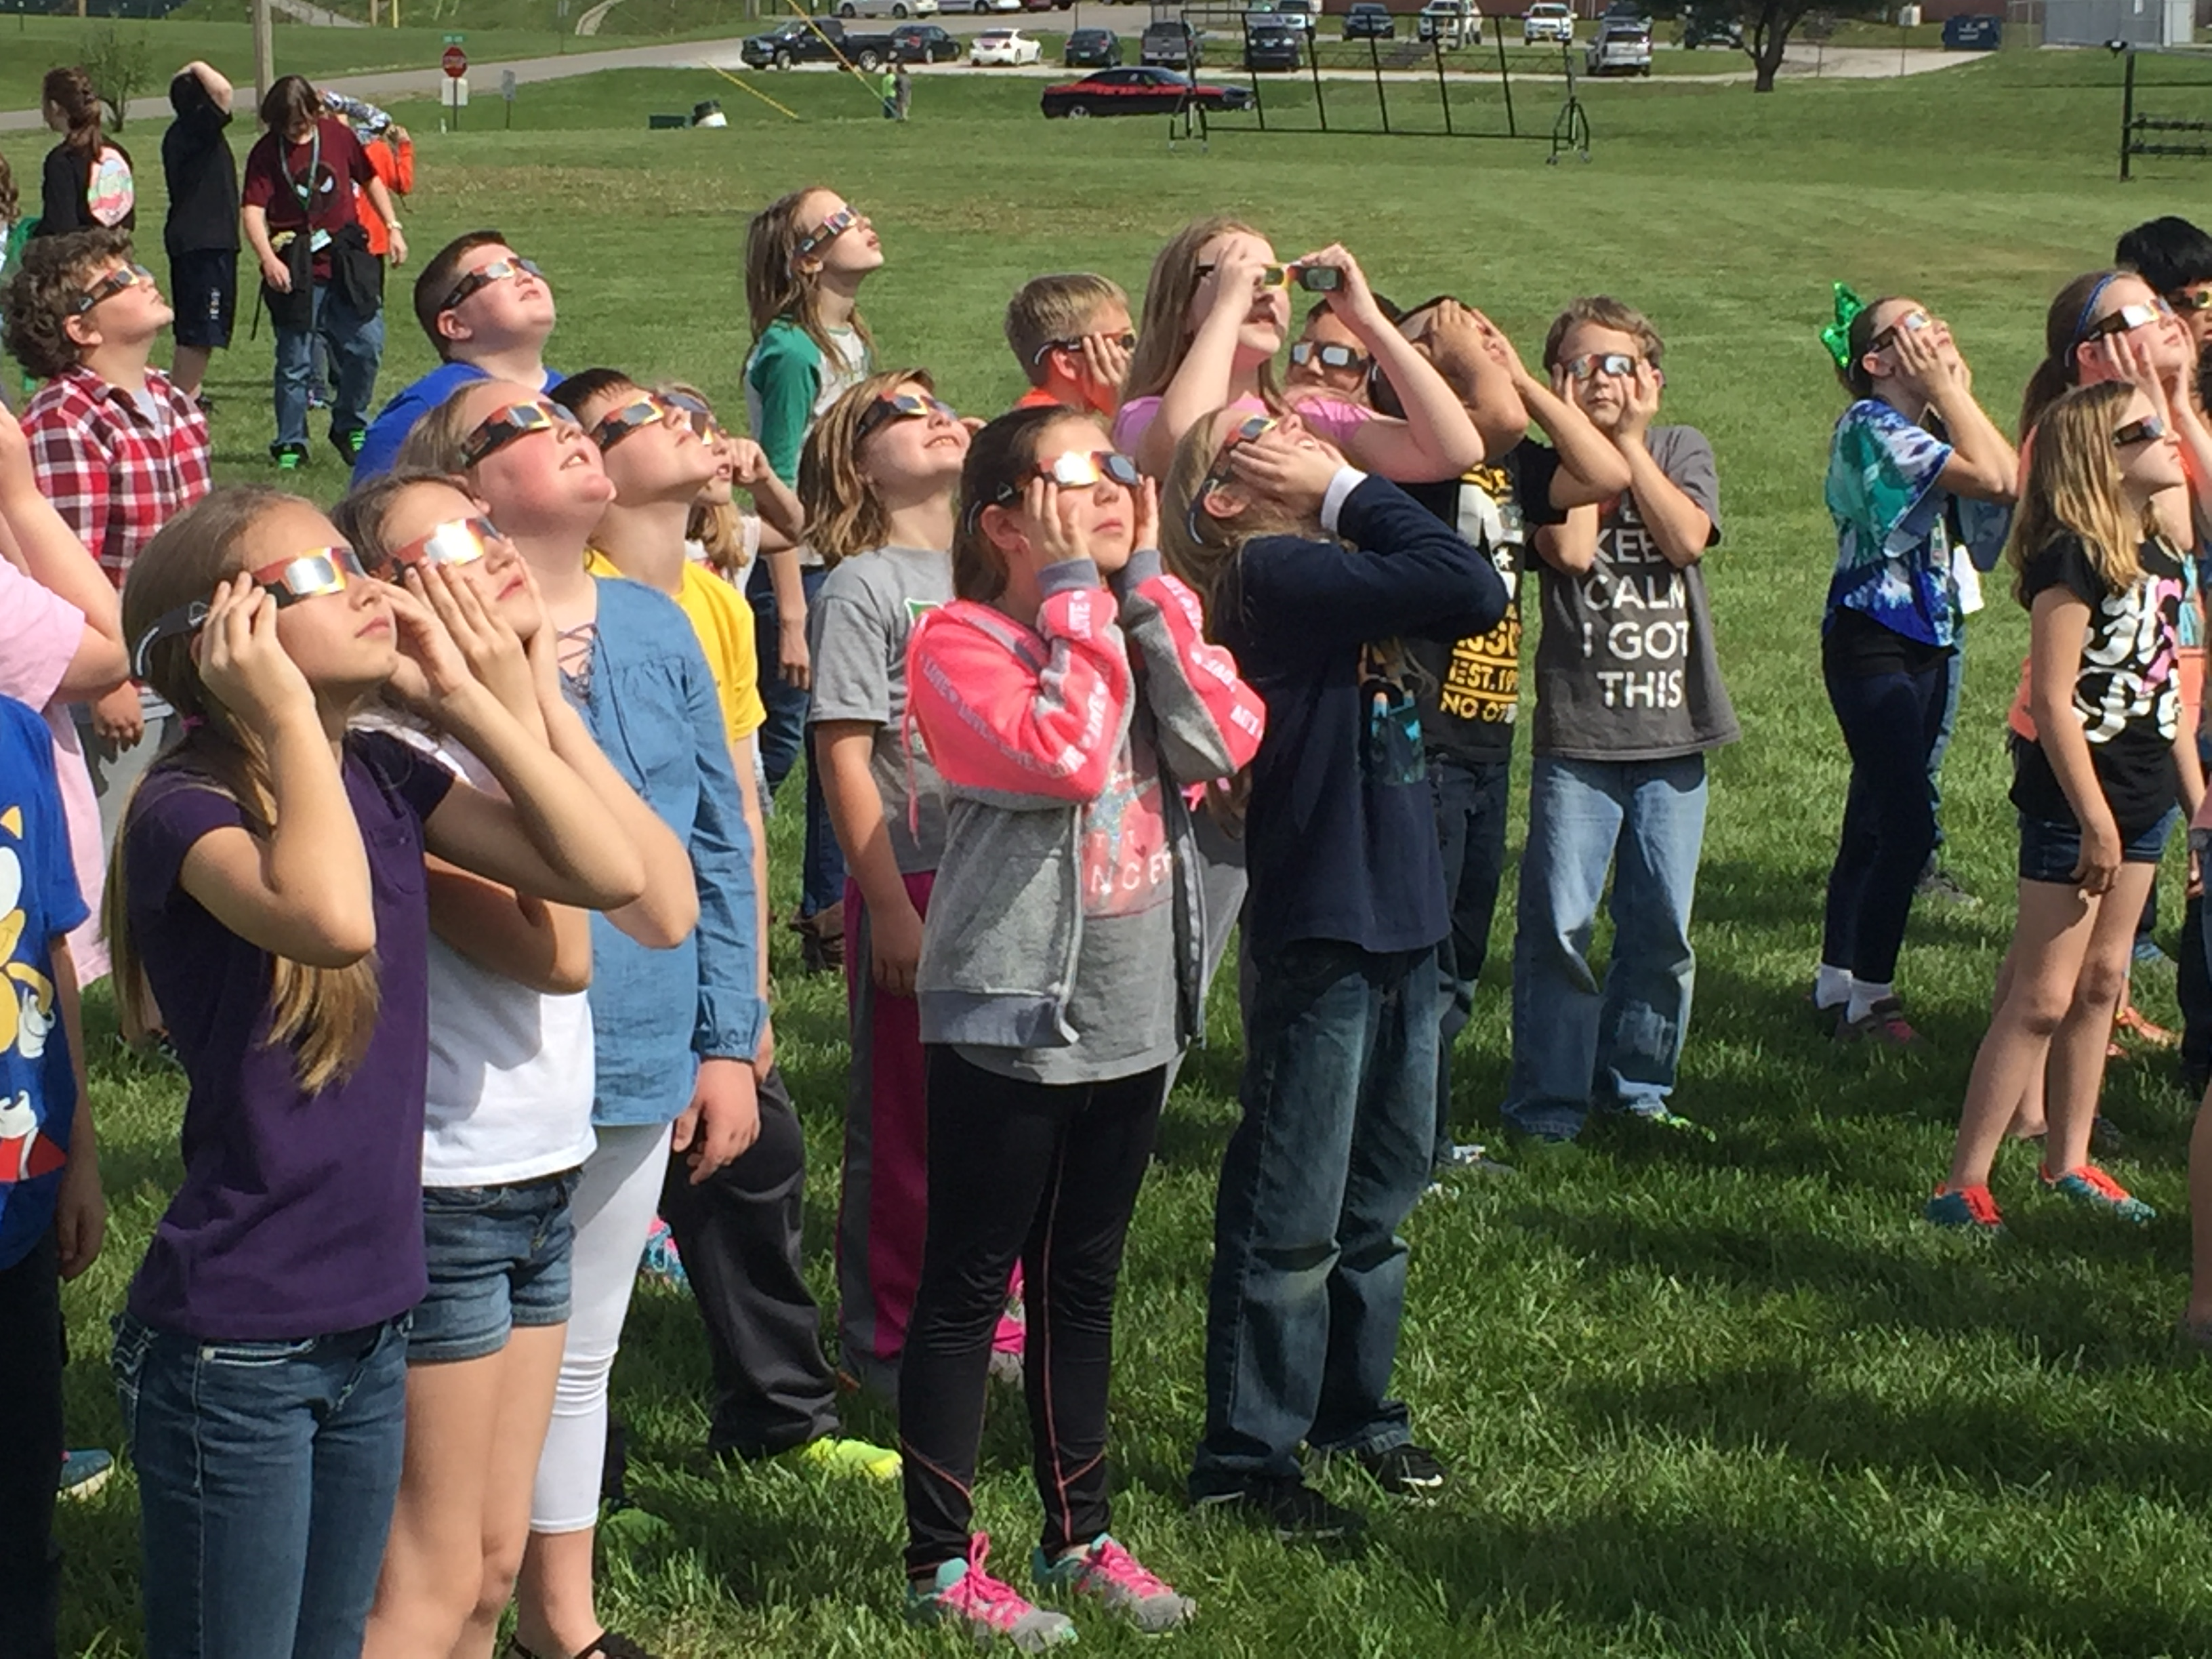 Kids at Perryville Middle School trying out eclipse glasses